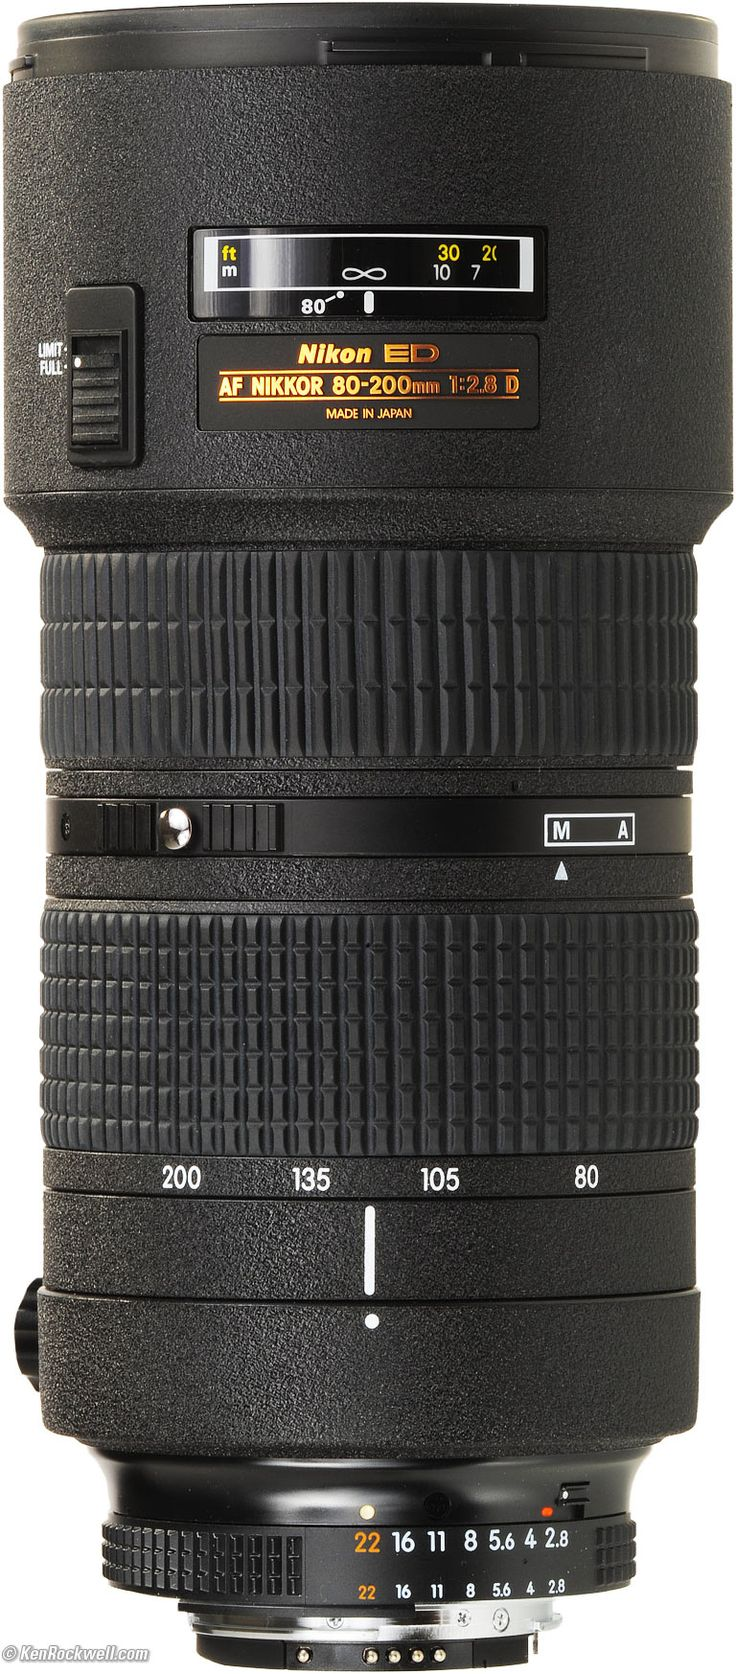 The Nikon AF Zoom-Nikkor 80-200mm f/2.8D ED Lens is a fast telephoto zoom lens, ideal for indoor sports photography and photojournalism in dim light. It incorporates Autofocus (AF) and Internal Focusing (IF) technology and ED glass for sharp pictures.